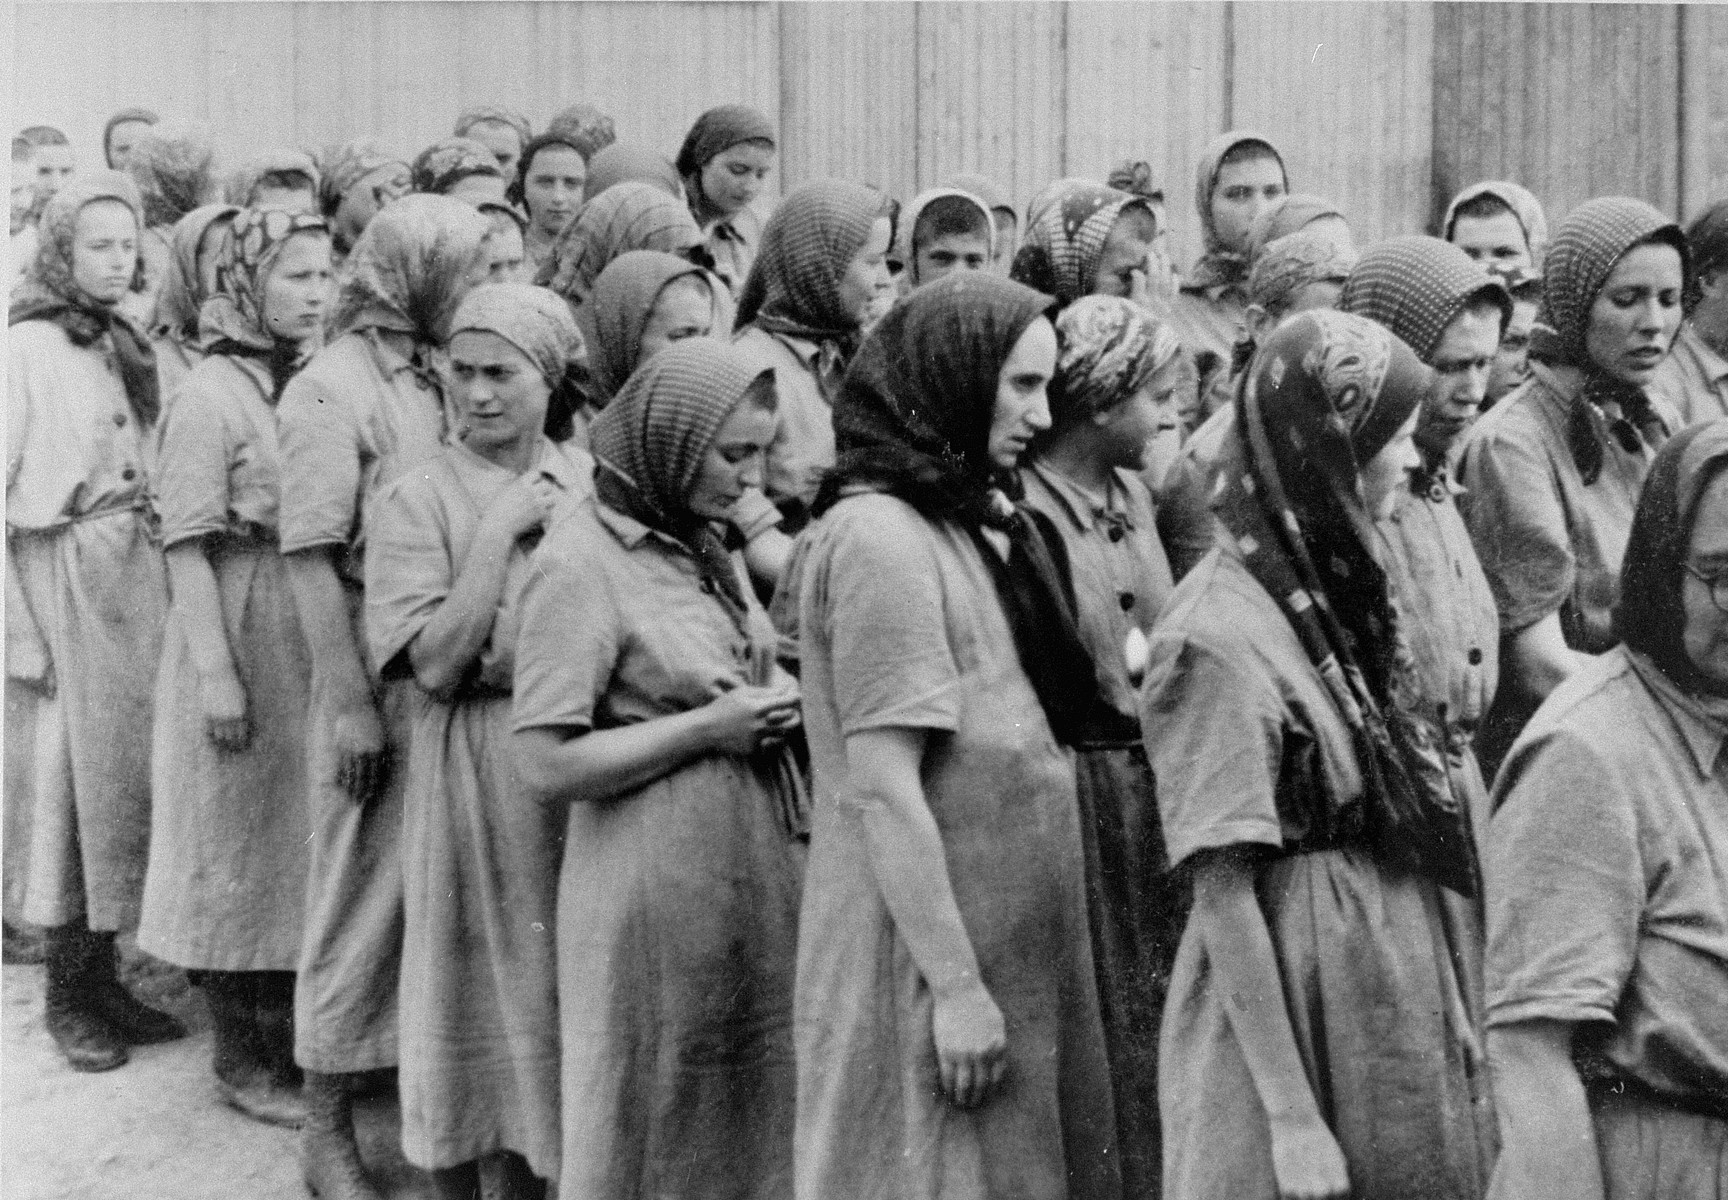 Jewish women from Subcarpathian Rus who have been selected for forced labor at Auschwitz-Birkenau, march toward their barracks after disinfection and headshaving.  Those pictured include Channah Birnbaum, Piri, Erna Birnbaum, Martha Birnbaum, Suri Mermelstein, Suri Stern, Maidi Birnbaum, Aliska Hochmann, Suri Birnbaum, Agi Birnbaum, Bubi Birnbaum and Magdalena Grunfeld.  Pictured in the center of the front row, looking to the left, is Hanna Kelemen (nee Joanna Weigler.)    Bubi Birnbaum was a singer who together with Suri and Piri Birnbaum occasssionally performed for the Germans in the camp.